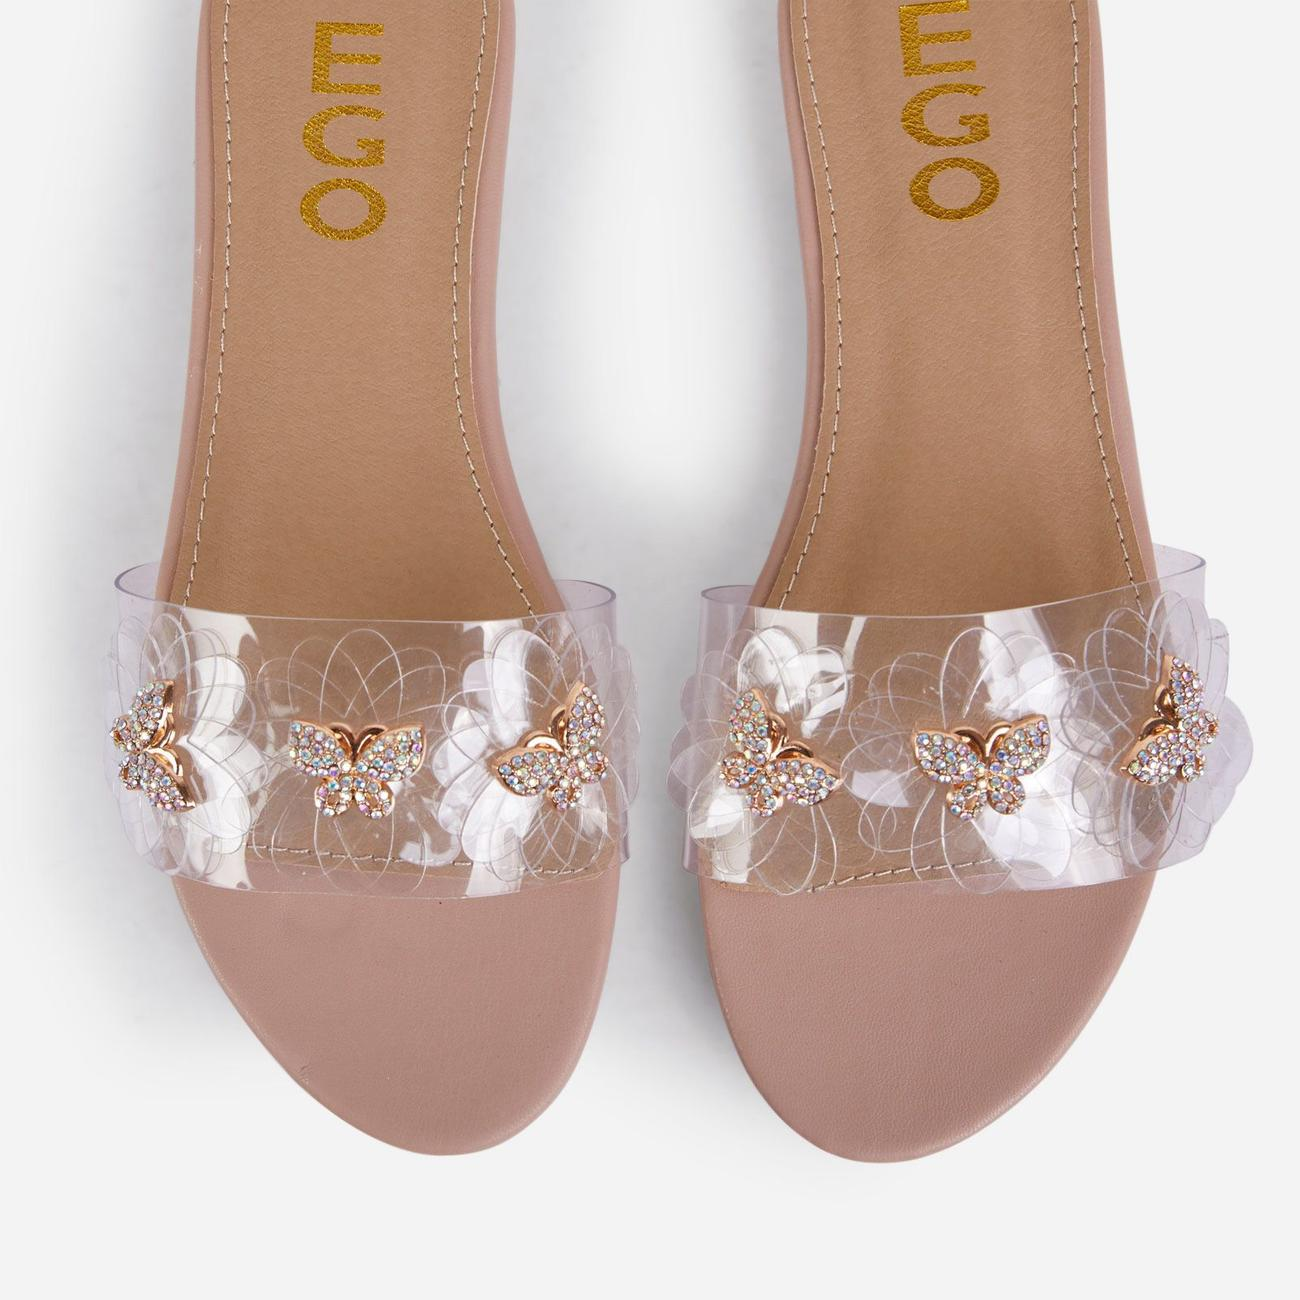 Lily Diamante Butterfly Detail Floral Clear Perspex Flat Slider Sandal In Nude Faux Leather Image 4